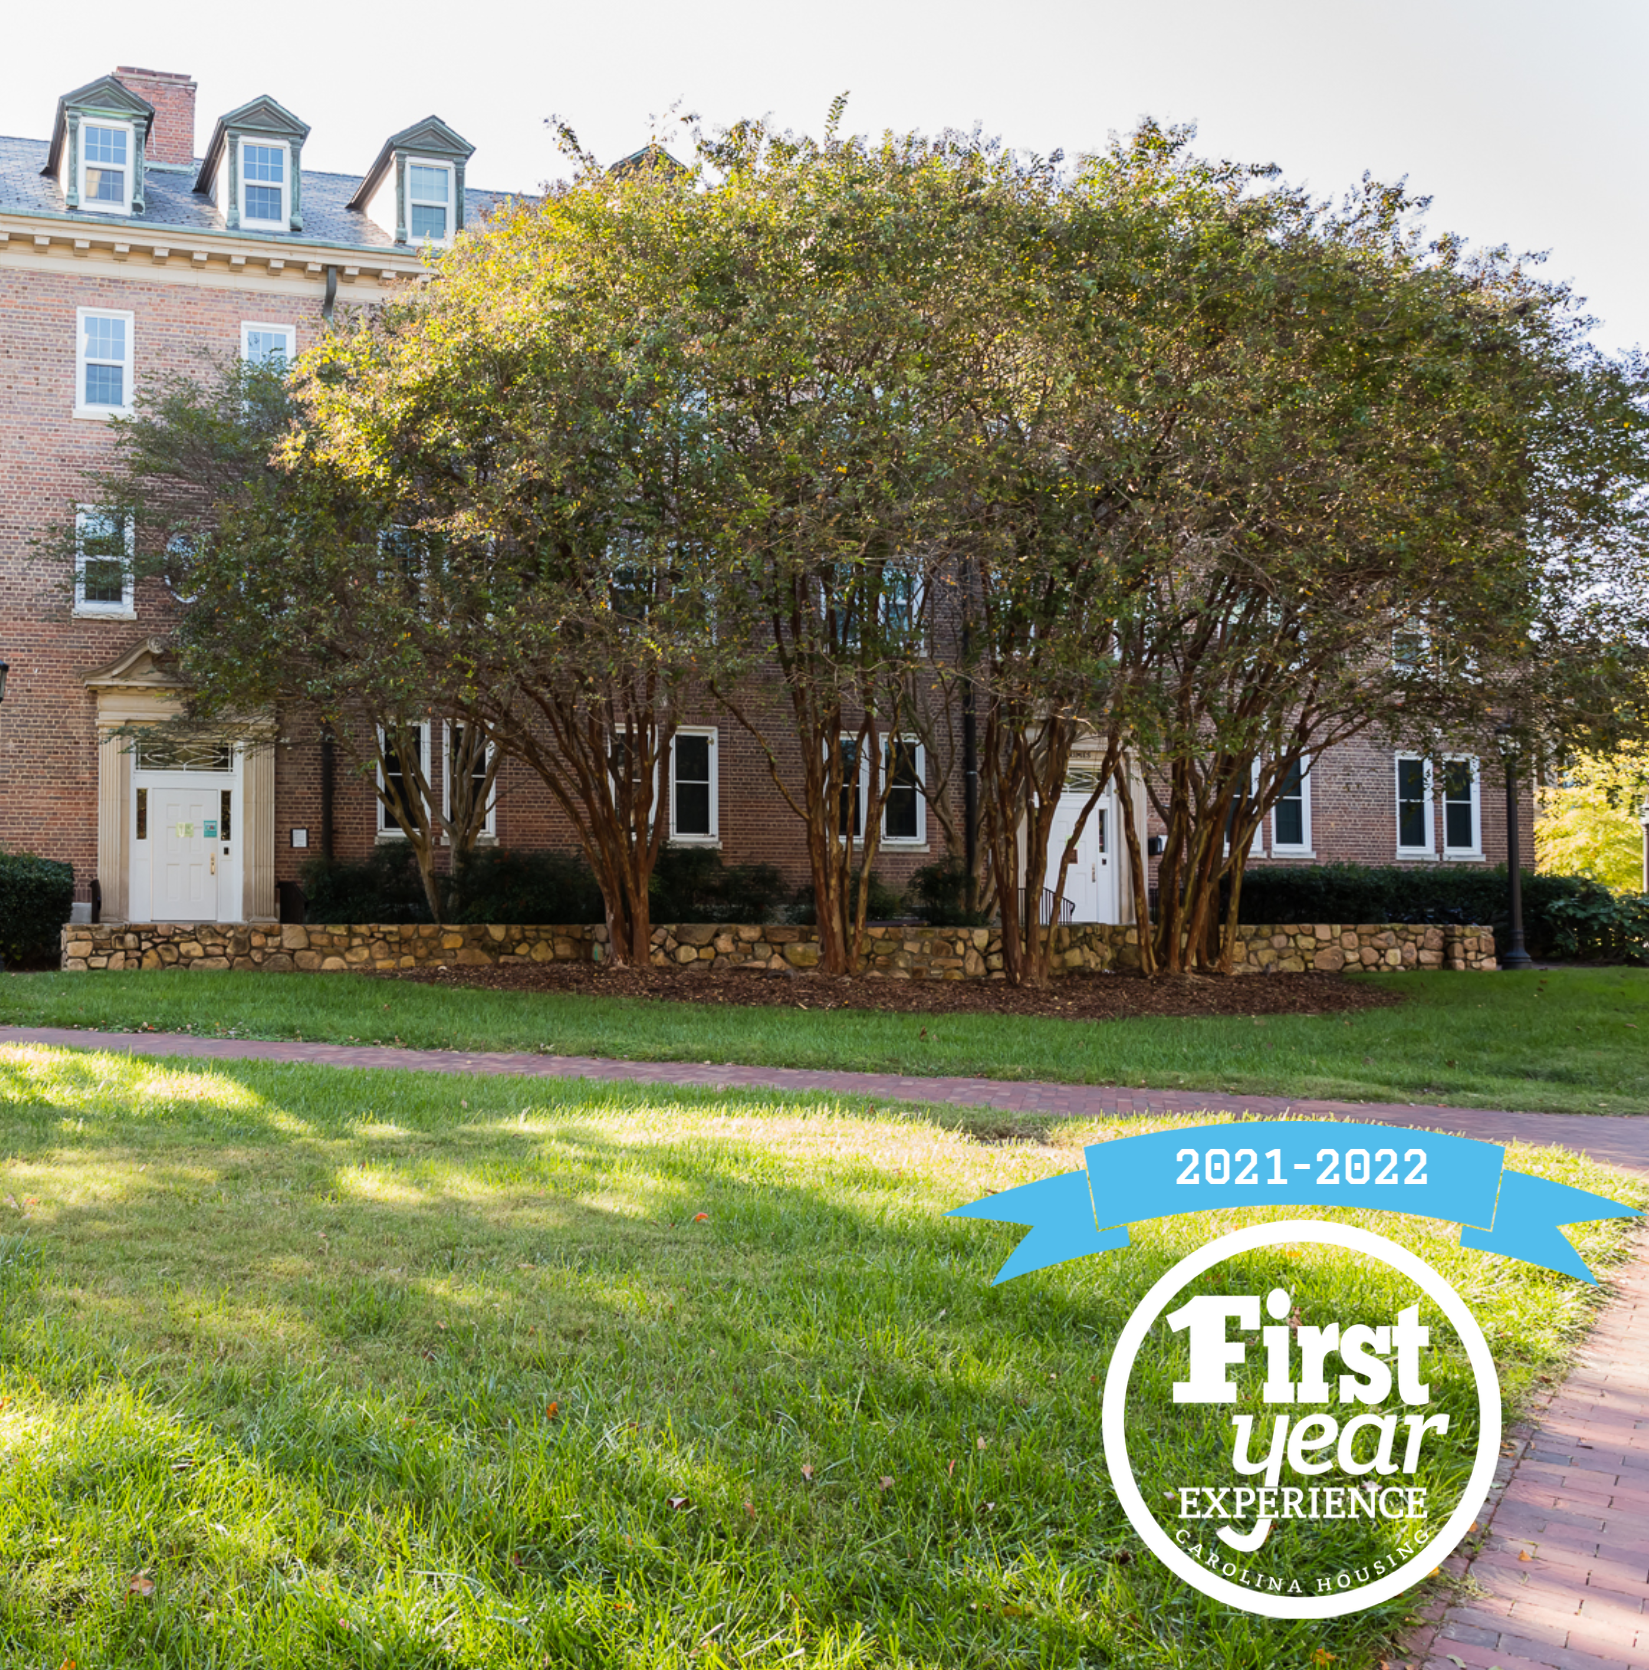 Grimes residence hall with the First Year Experience logo in the right corner.